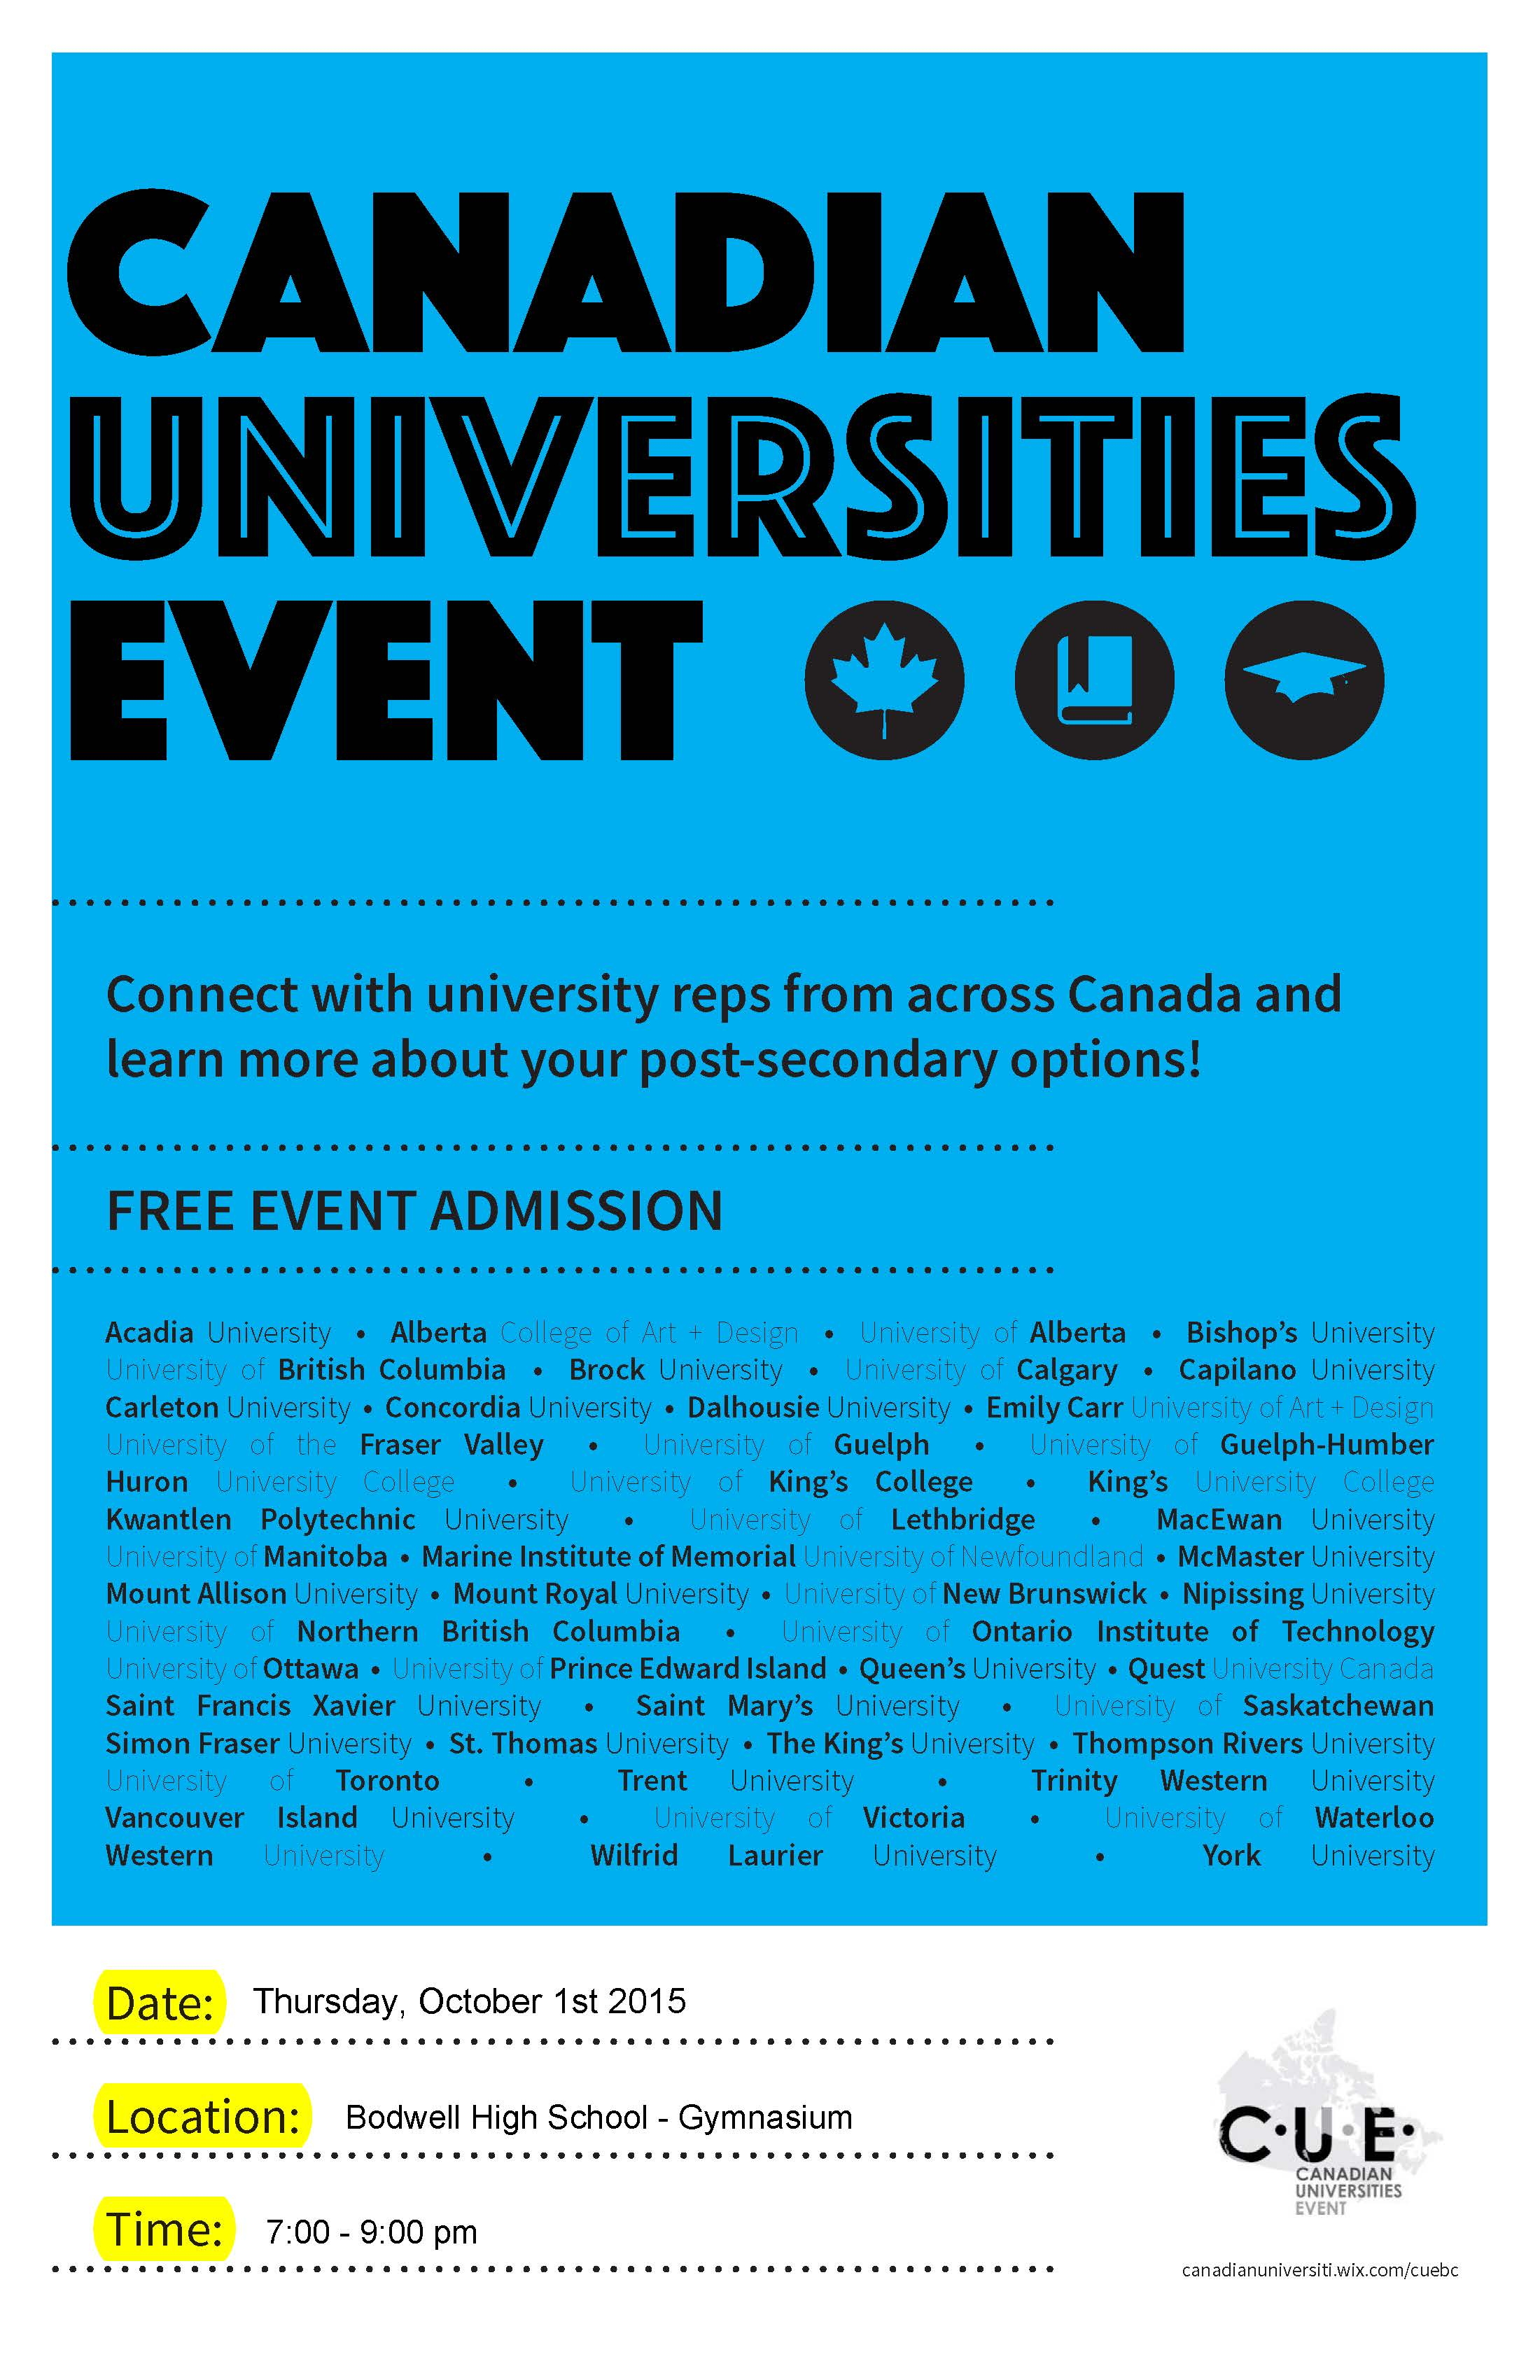 Canadian Universities Event